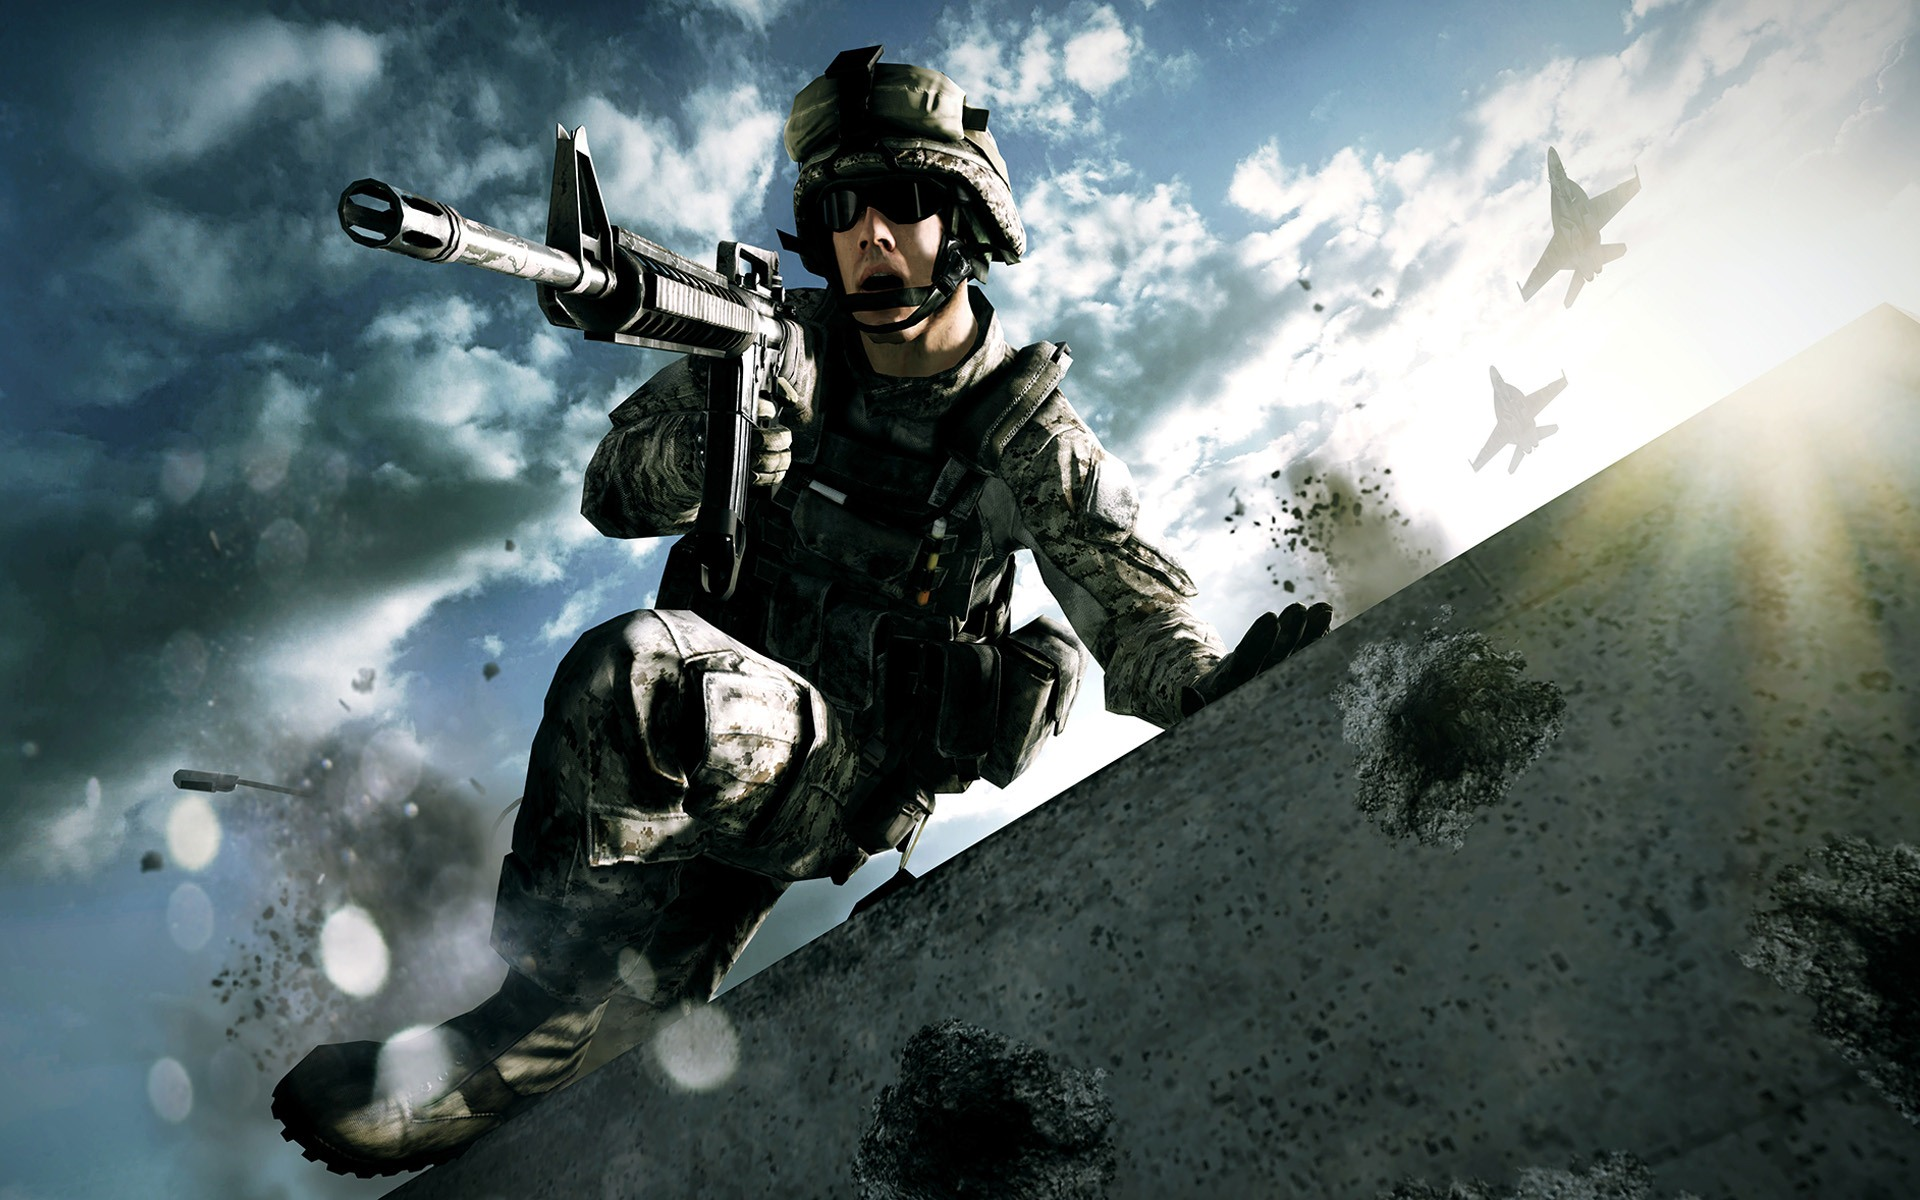 battlefield 3 hd wallpapers #7 - 1920x1200 wallpaper download